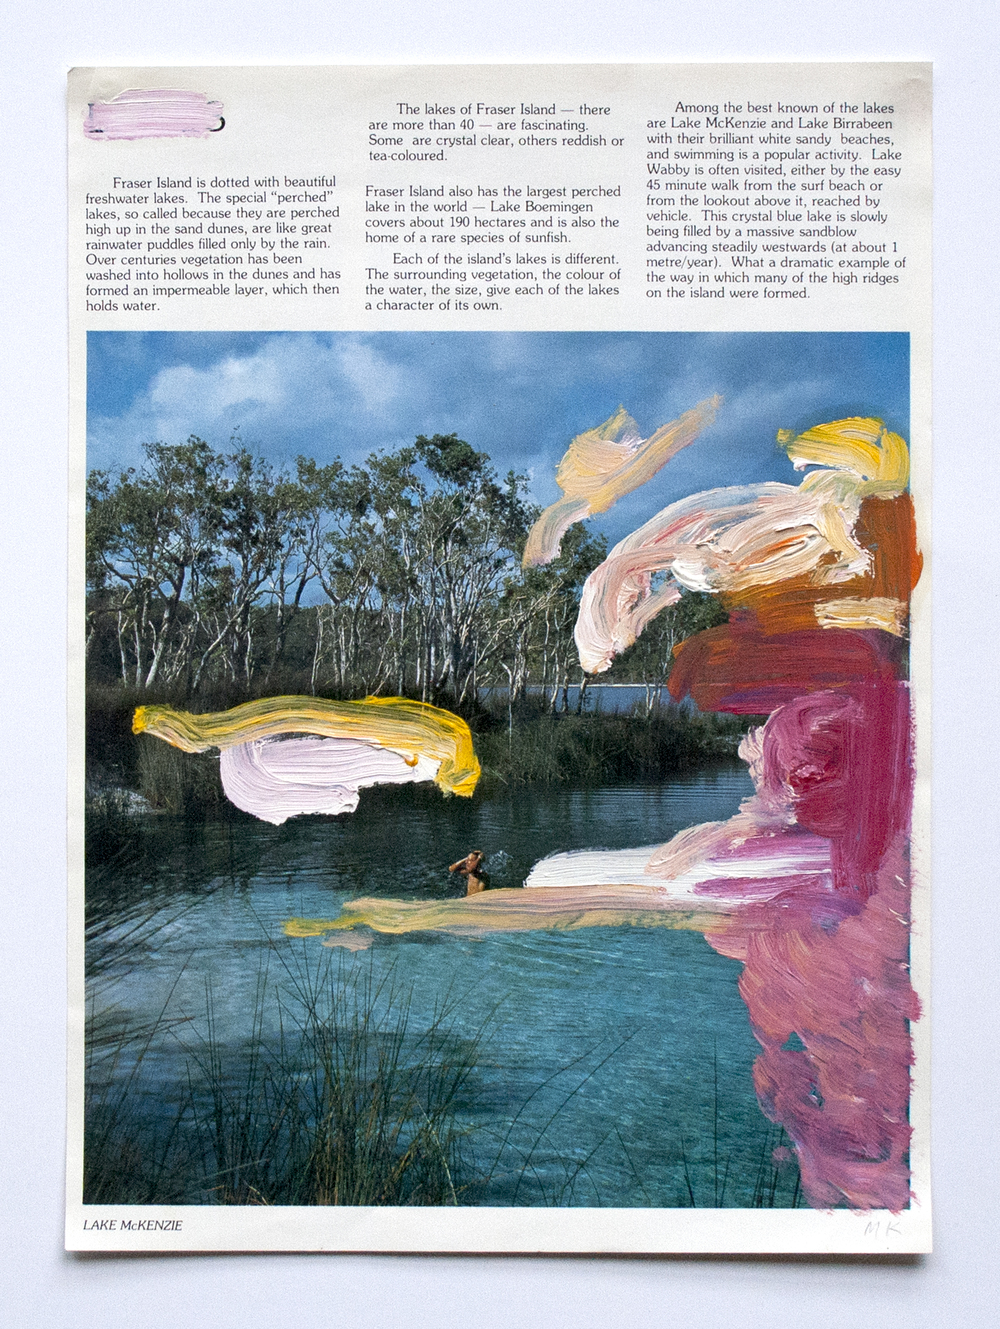 Lake McKenzie  2014  Oil and PVA glue on magazine  21 x 29.7 cm